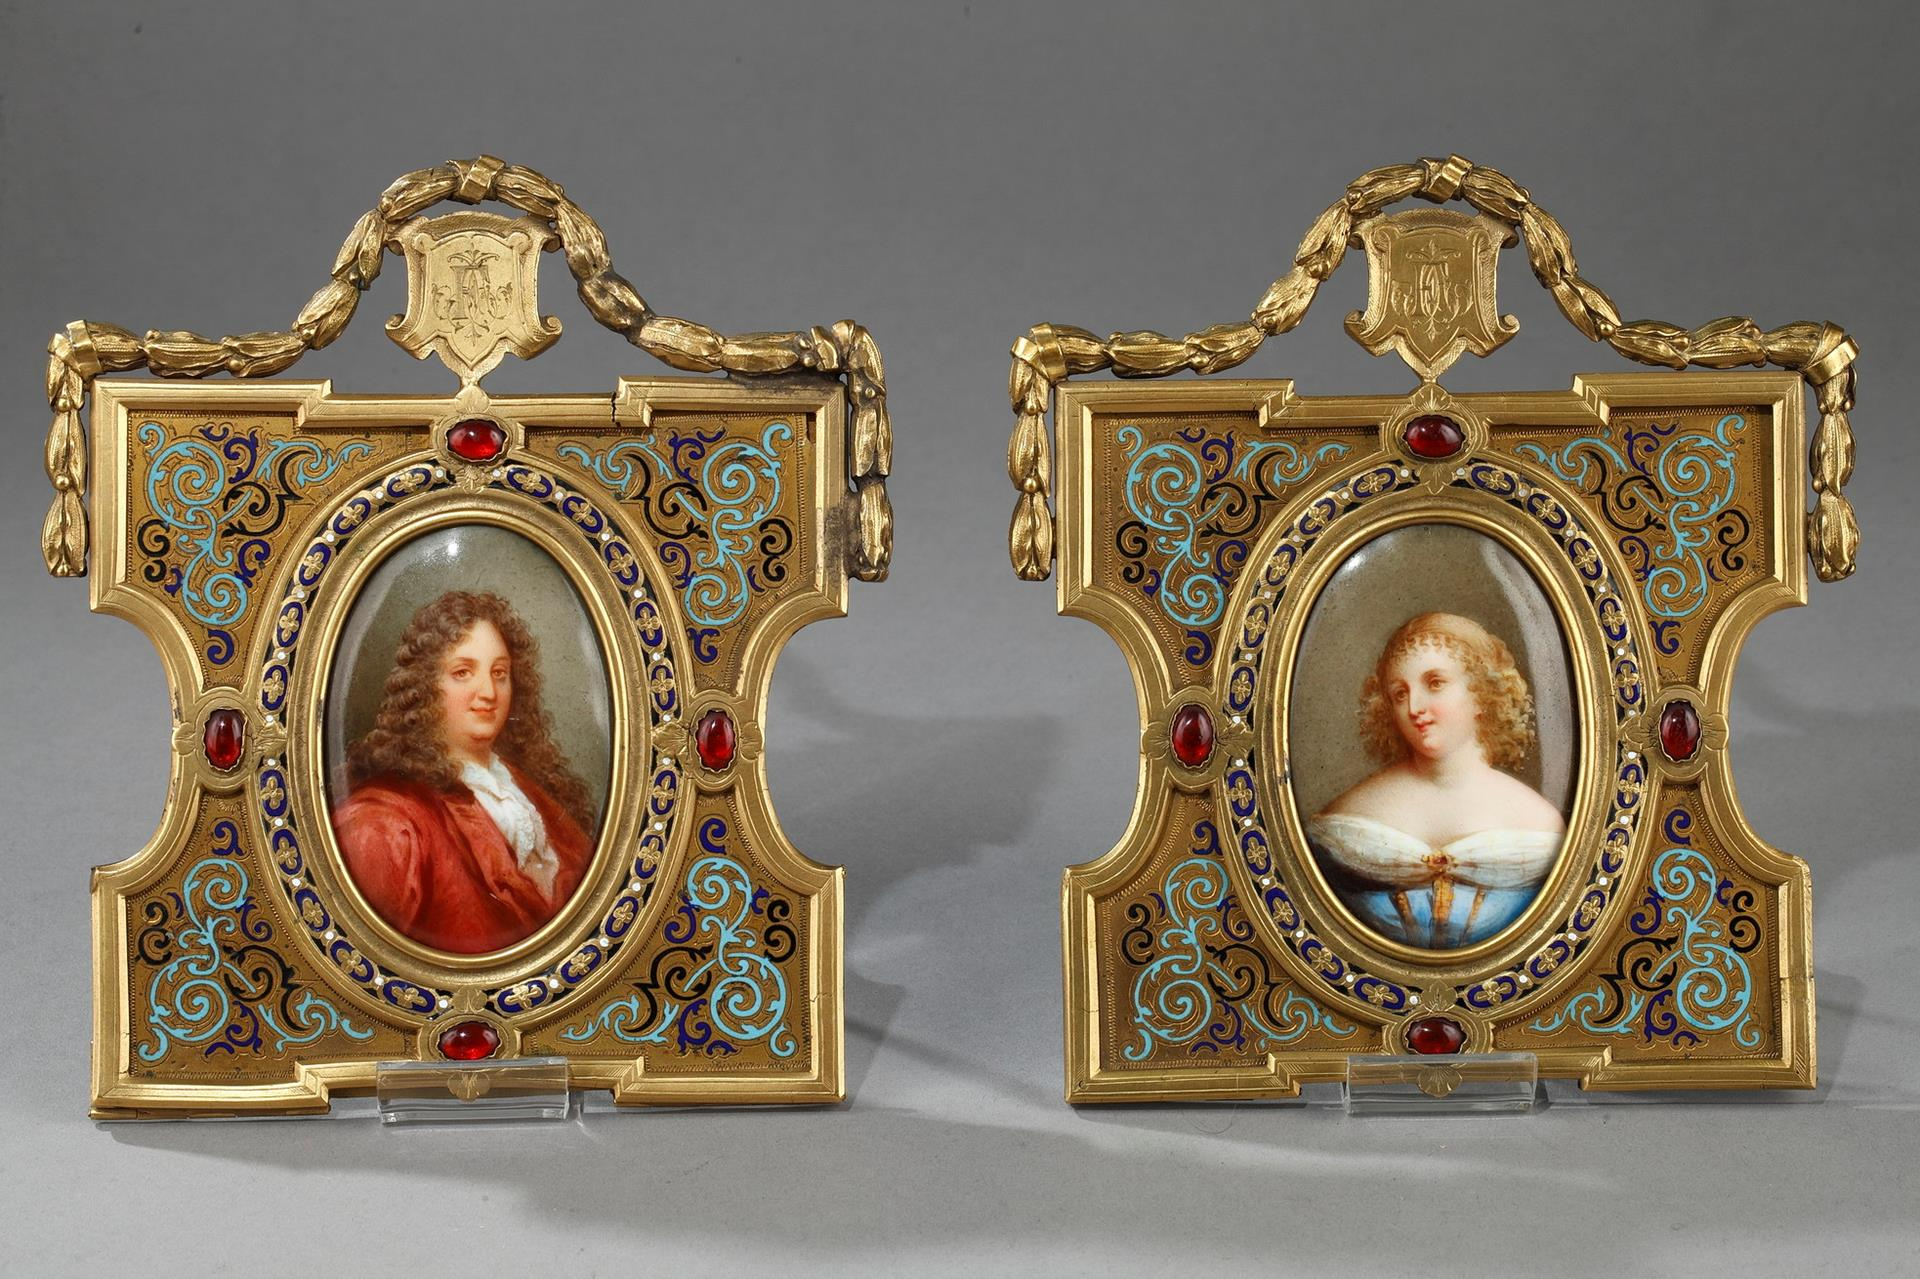 Pair of Porcelain Portrait. 19th century Gilded bronze Frame signed A.Giroux.